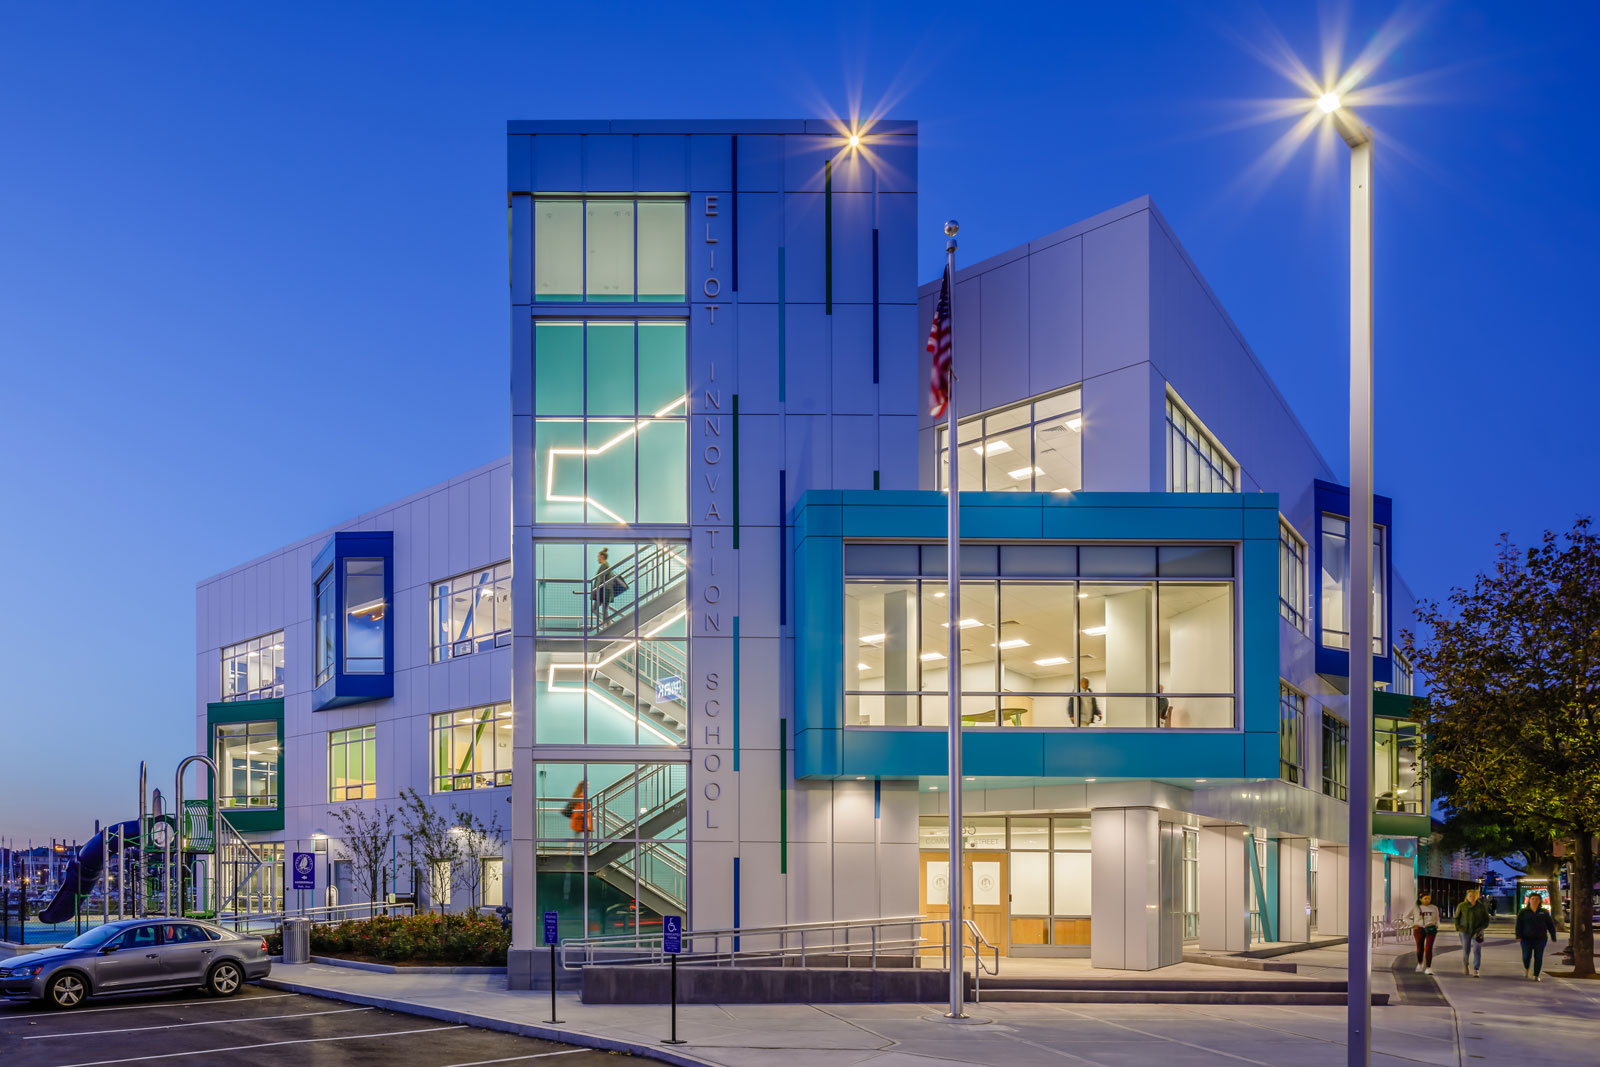 Front entrance of the Eliot Innovation School at night, lit from the interior featuring the turquoise stairway.